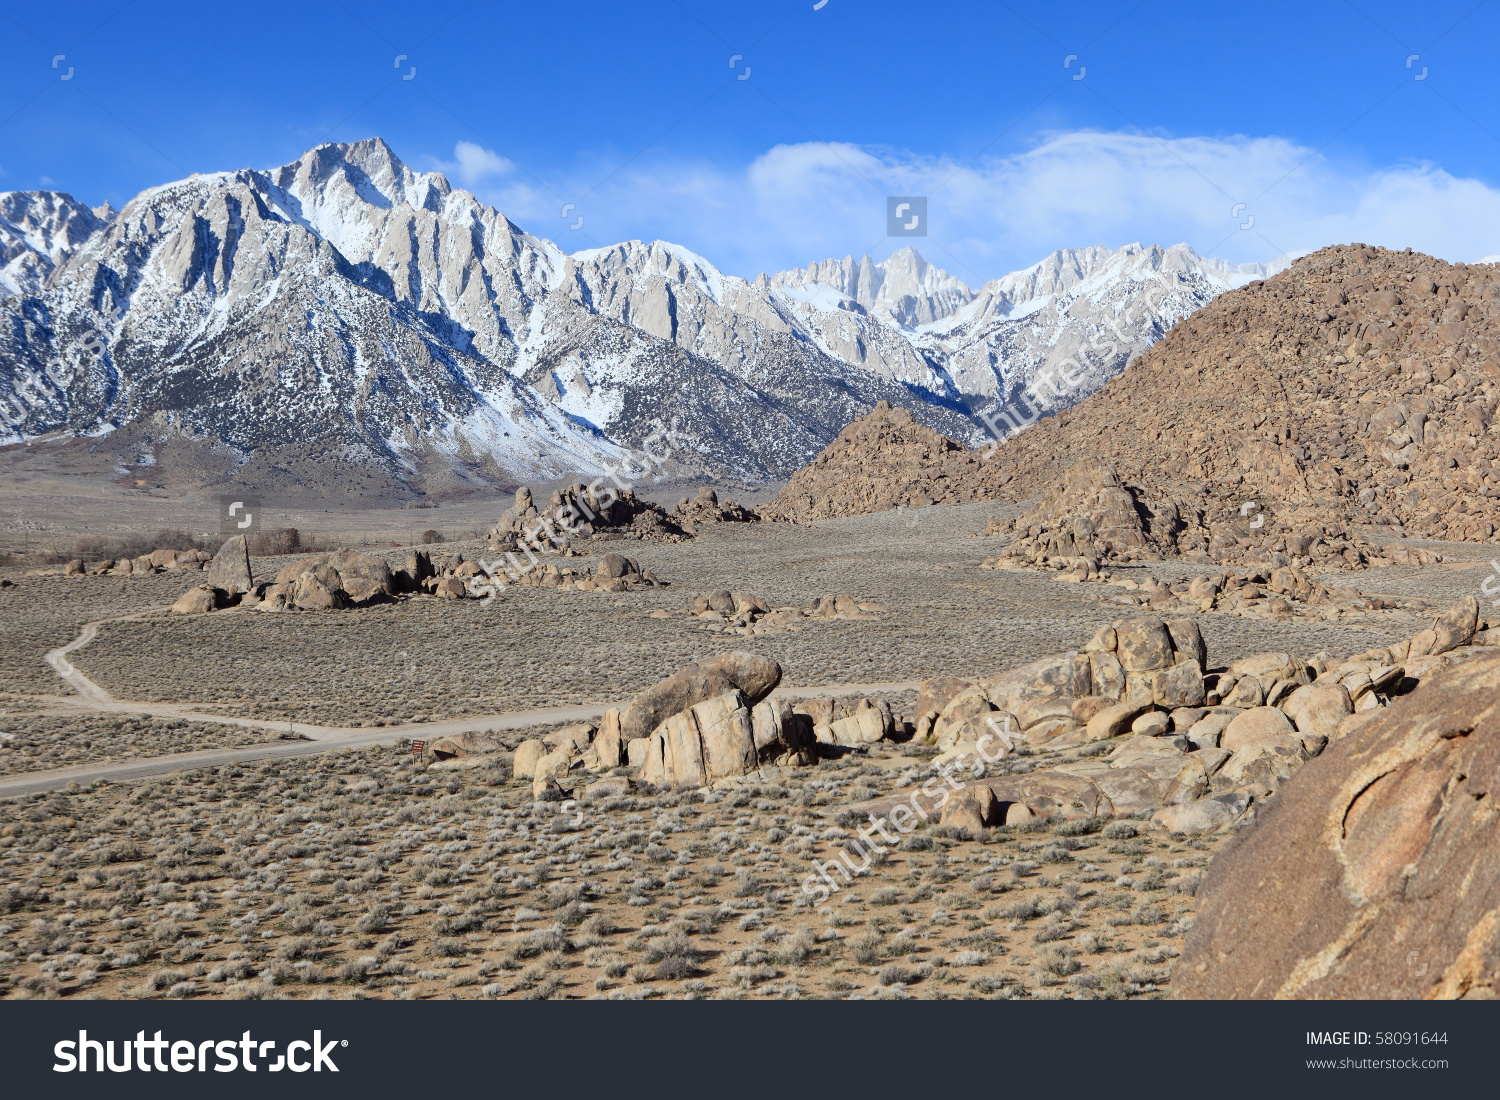 Alabama Hills clipart #5, Download drawings